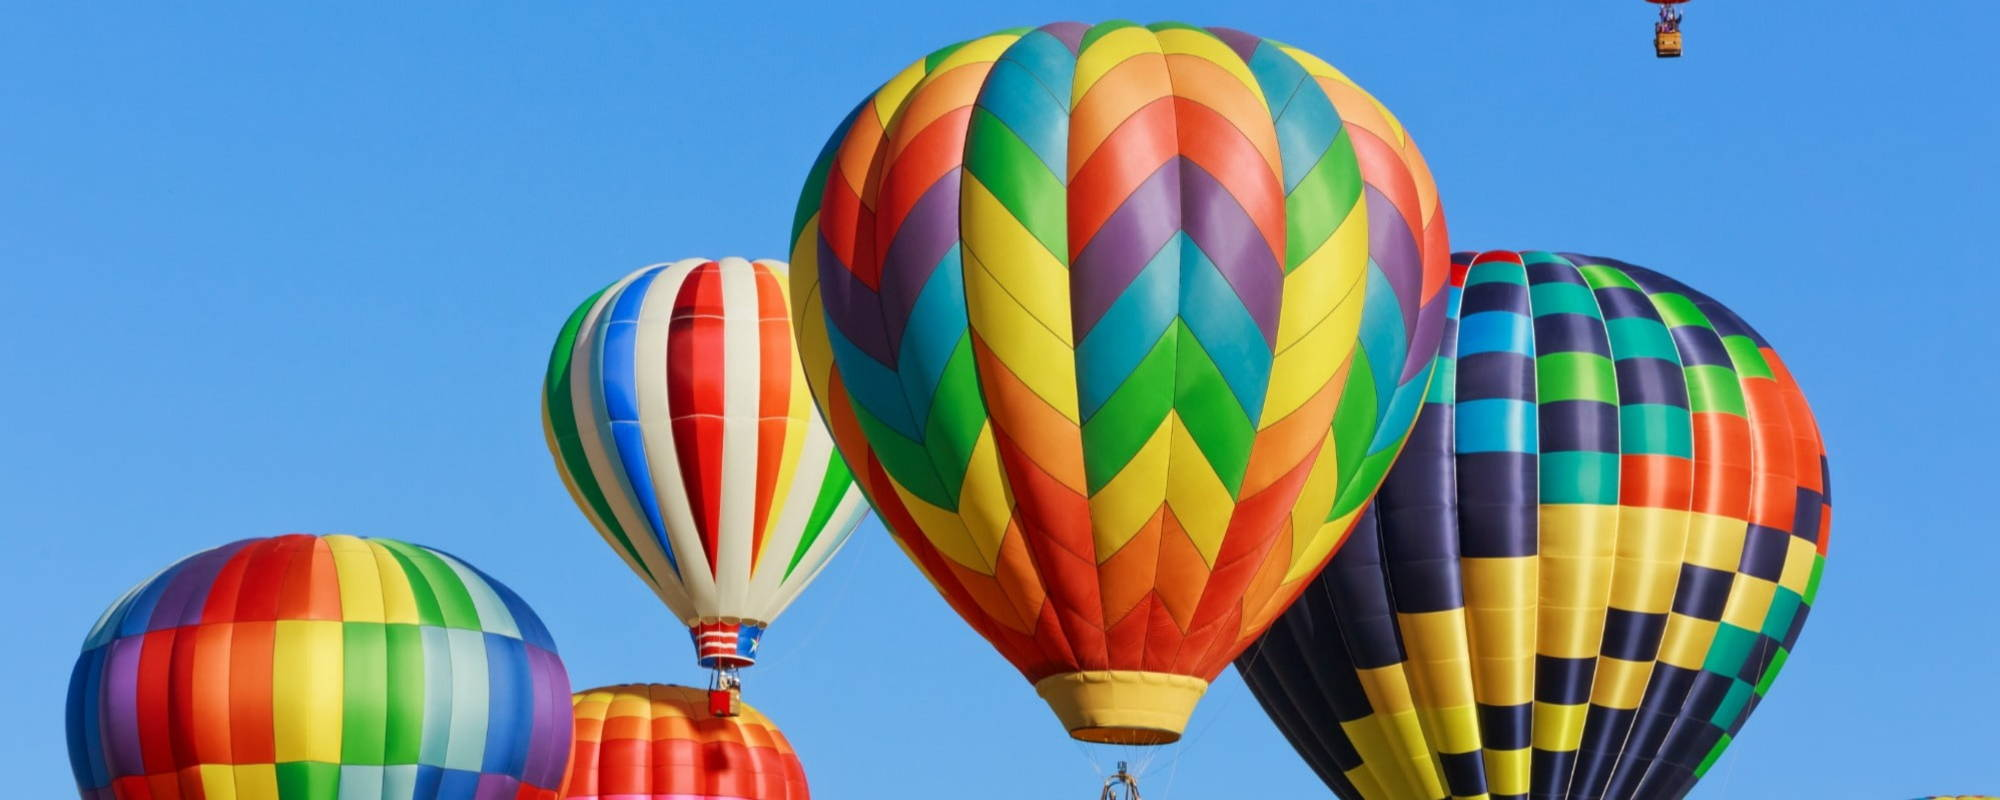 hot air balloons in multiple bright colours